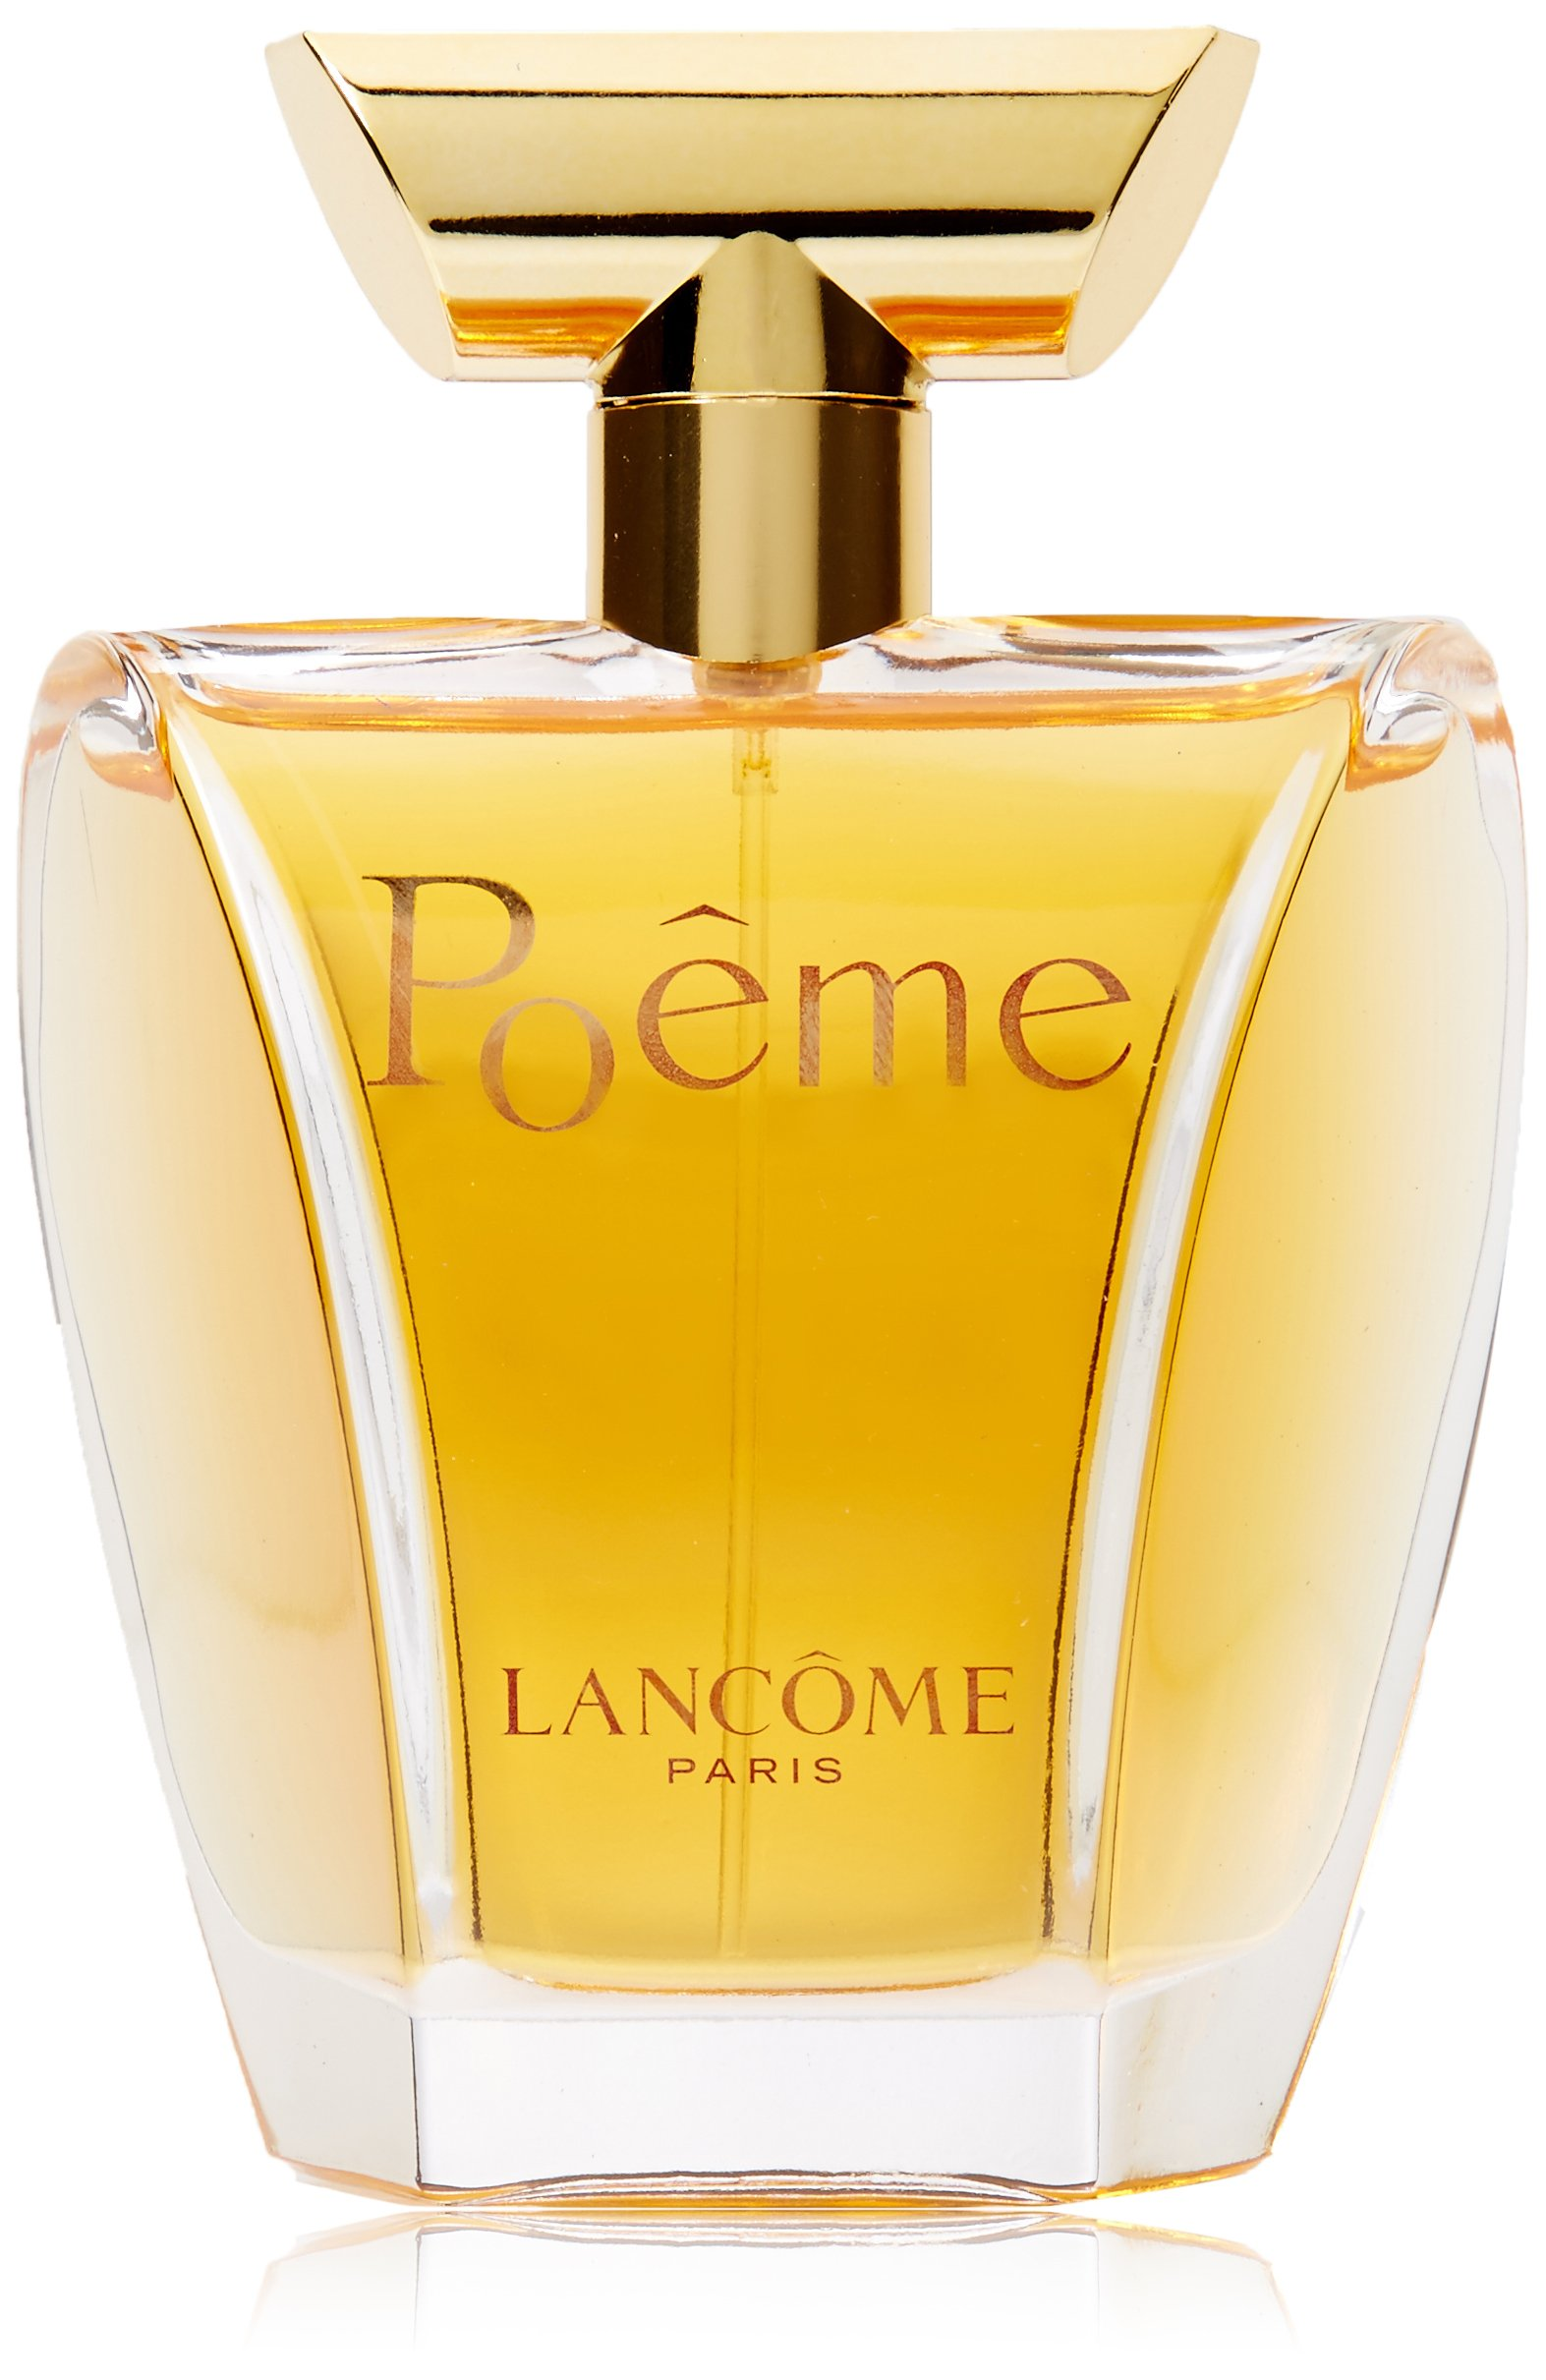 Poeme by Lancome for Women - 3.4 Ounce EDP Spray